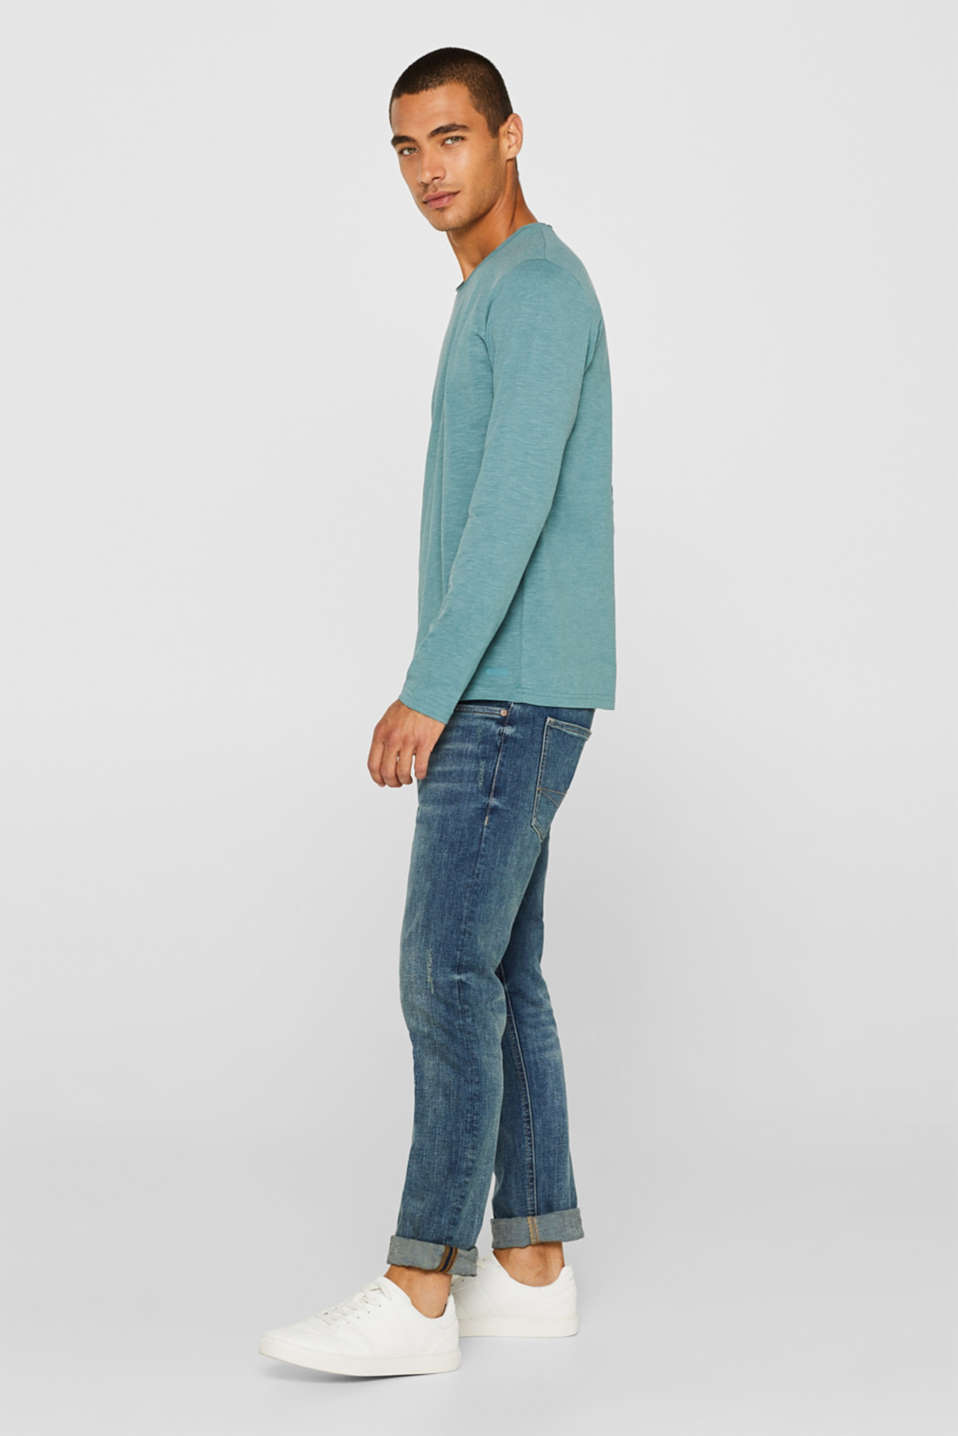 Slub jersey long sleeve top in blended cotton, DUSTY GREEN, detail image number 2